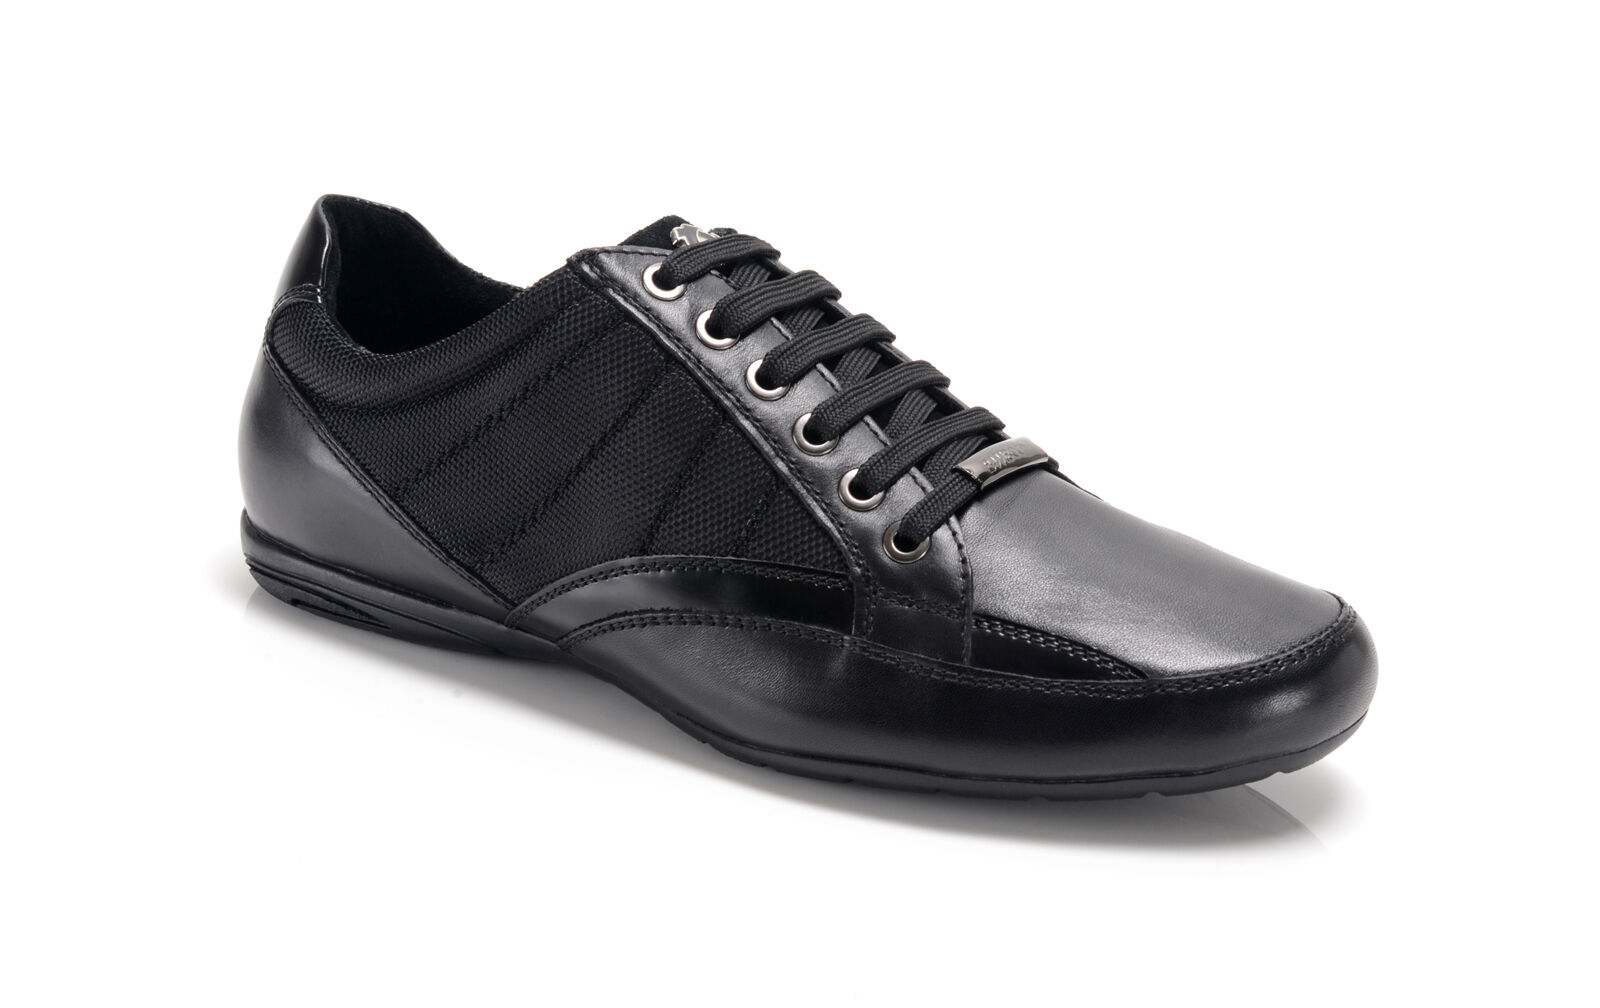 Bambooa Chrome Quality Black Leather Mens Designer Casual Shoes Trainers RRP